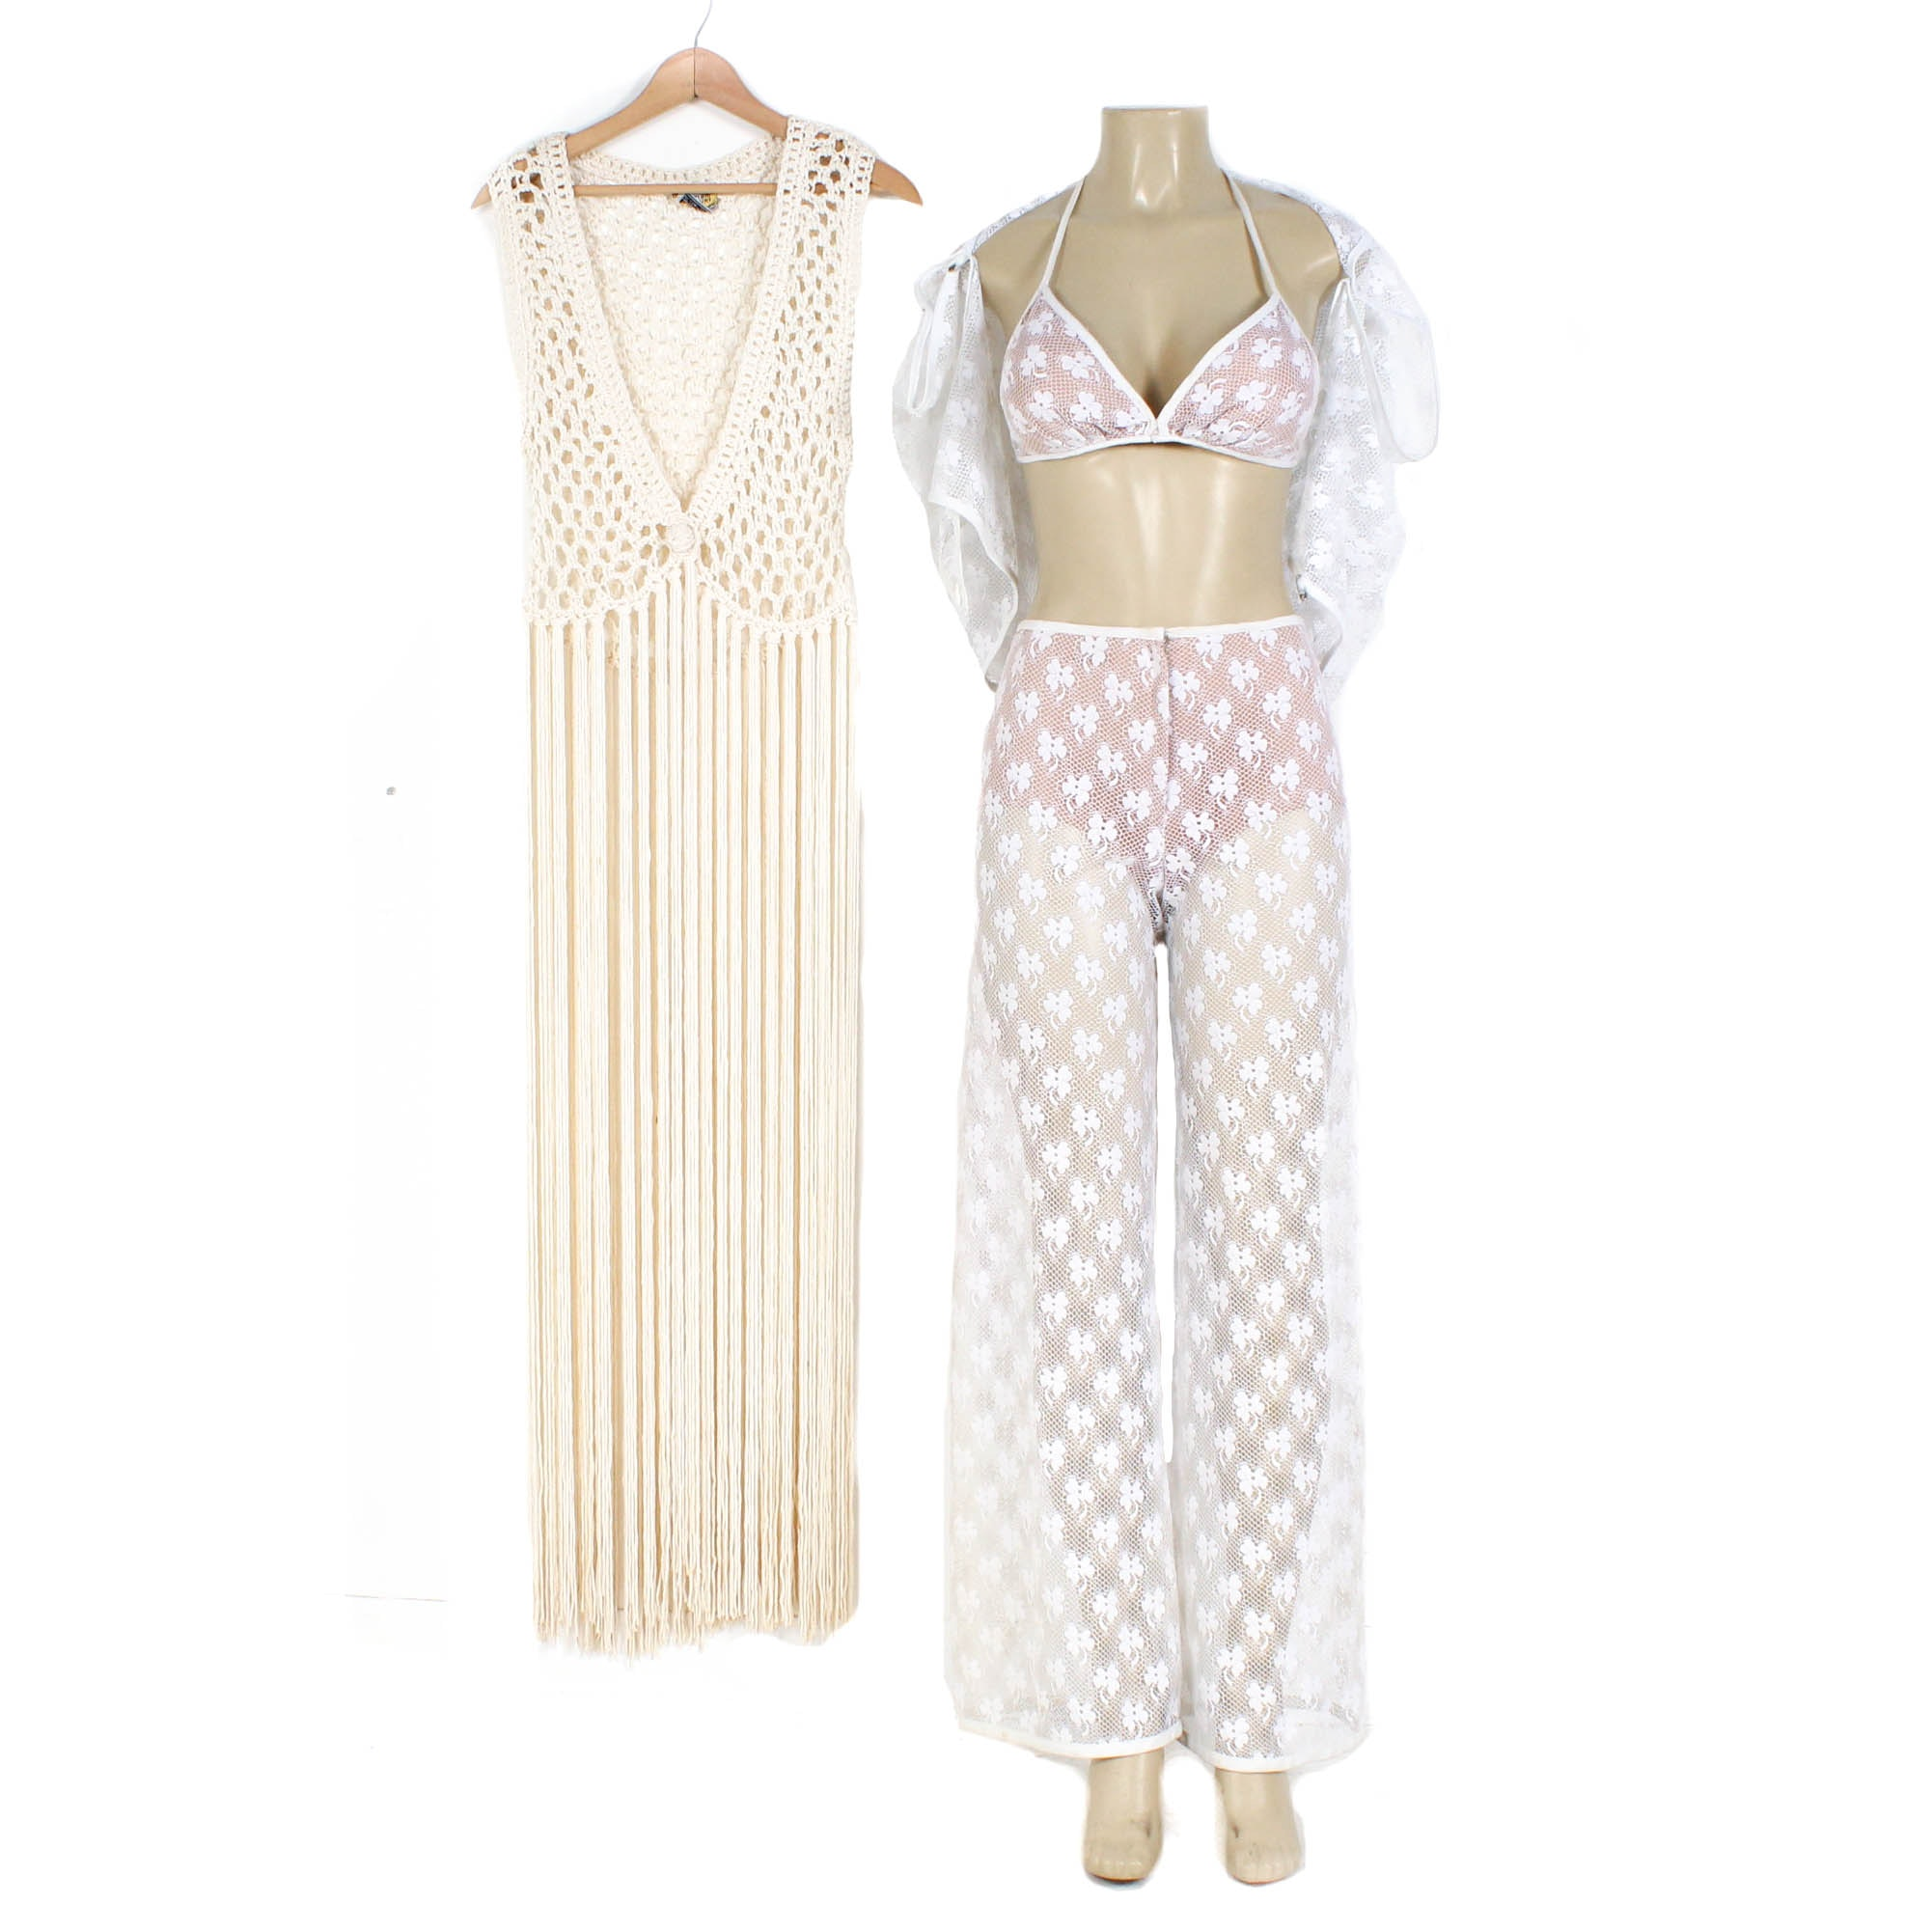 1970s Vintage Lace Bikini Top and Pants with Macramé Sleeveless Duster